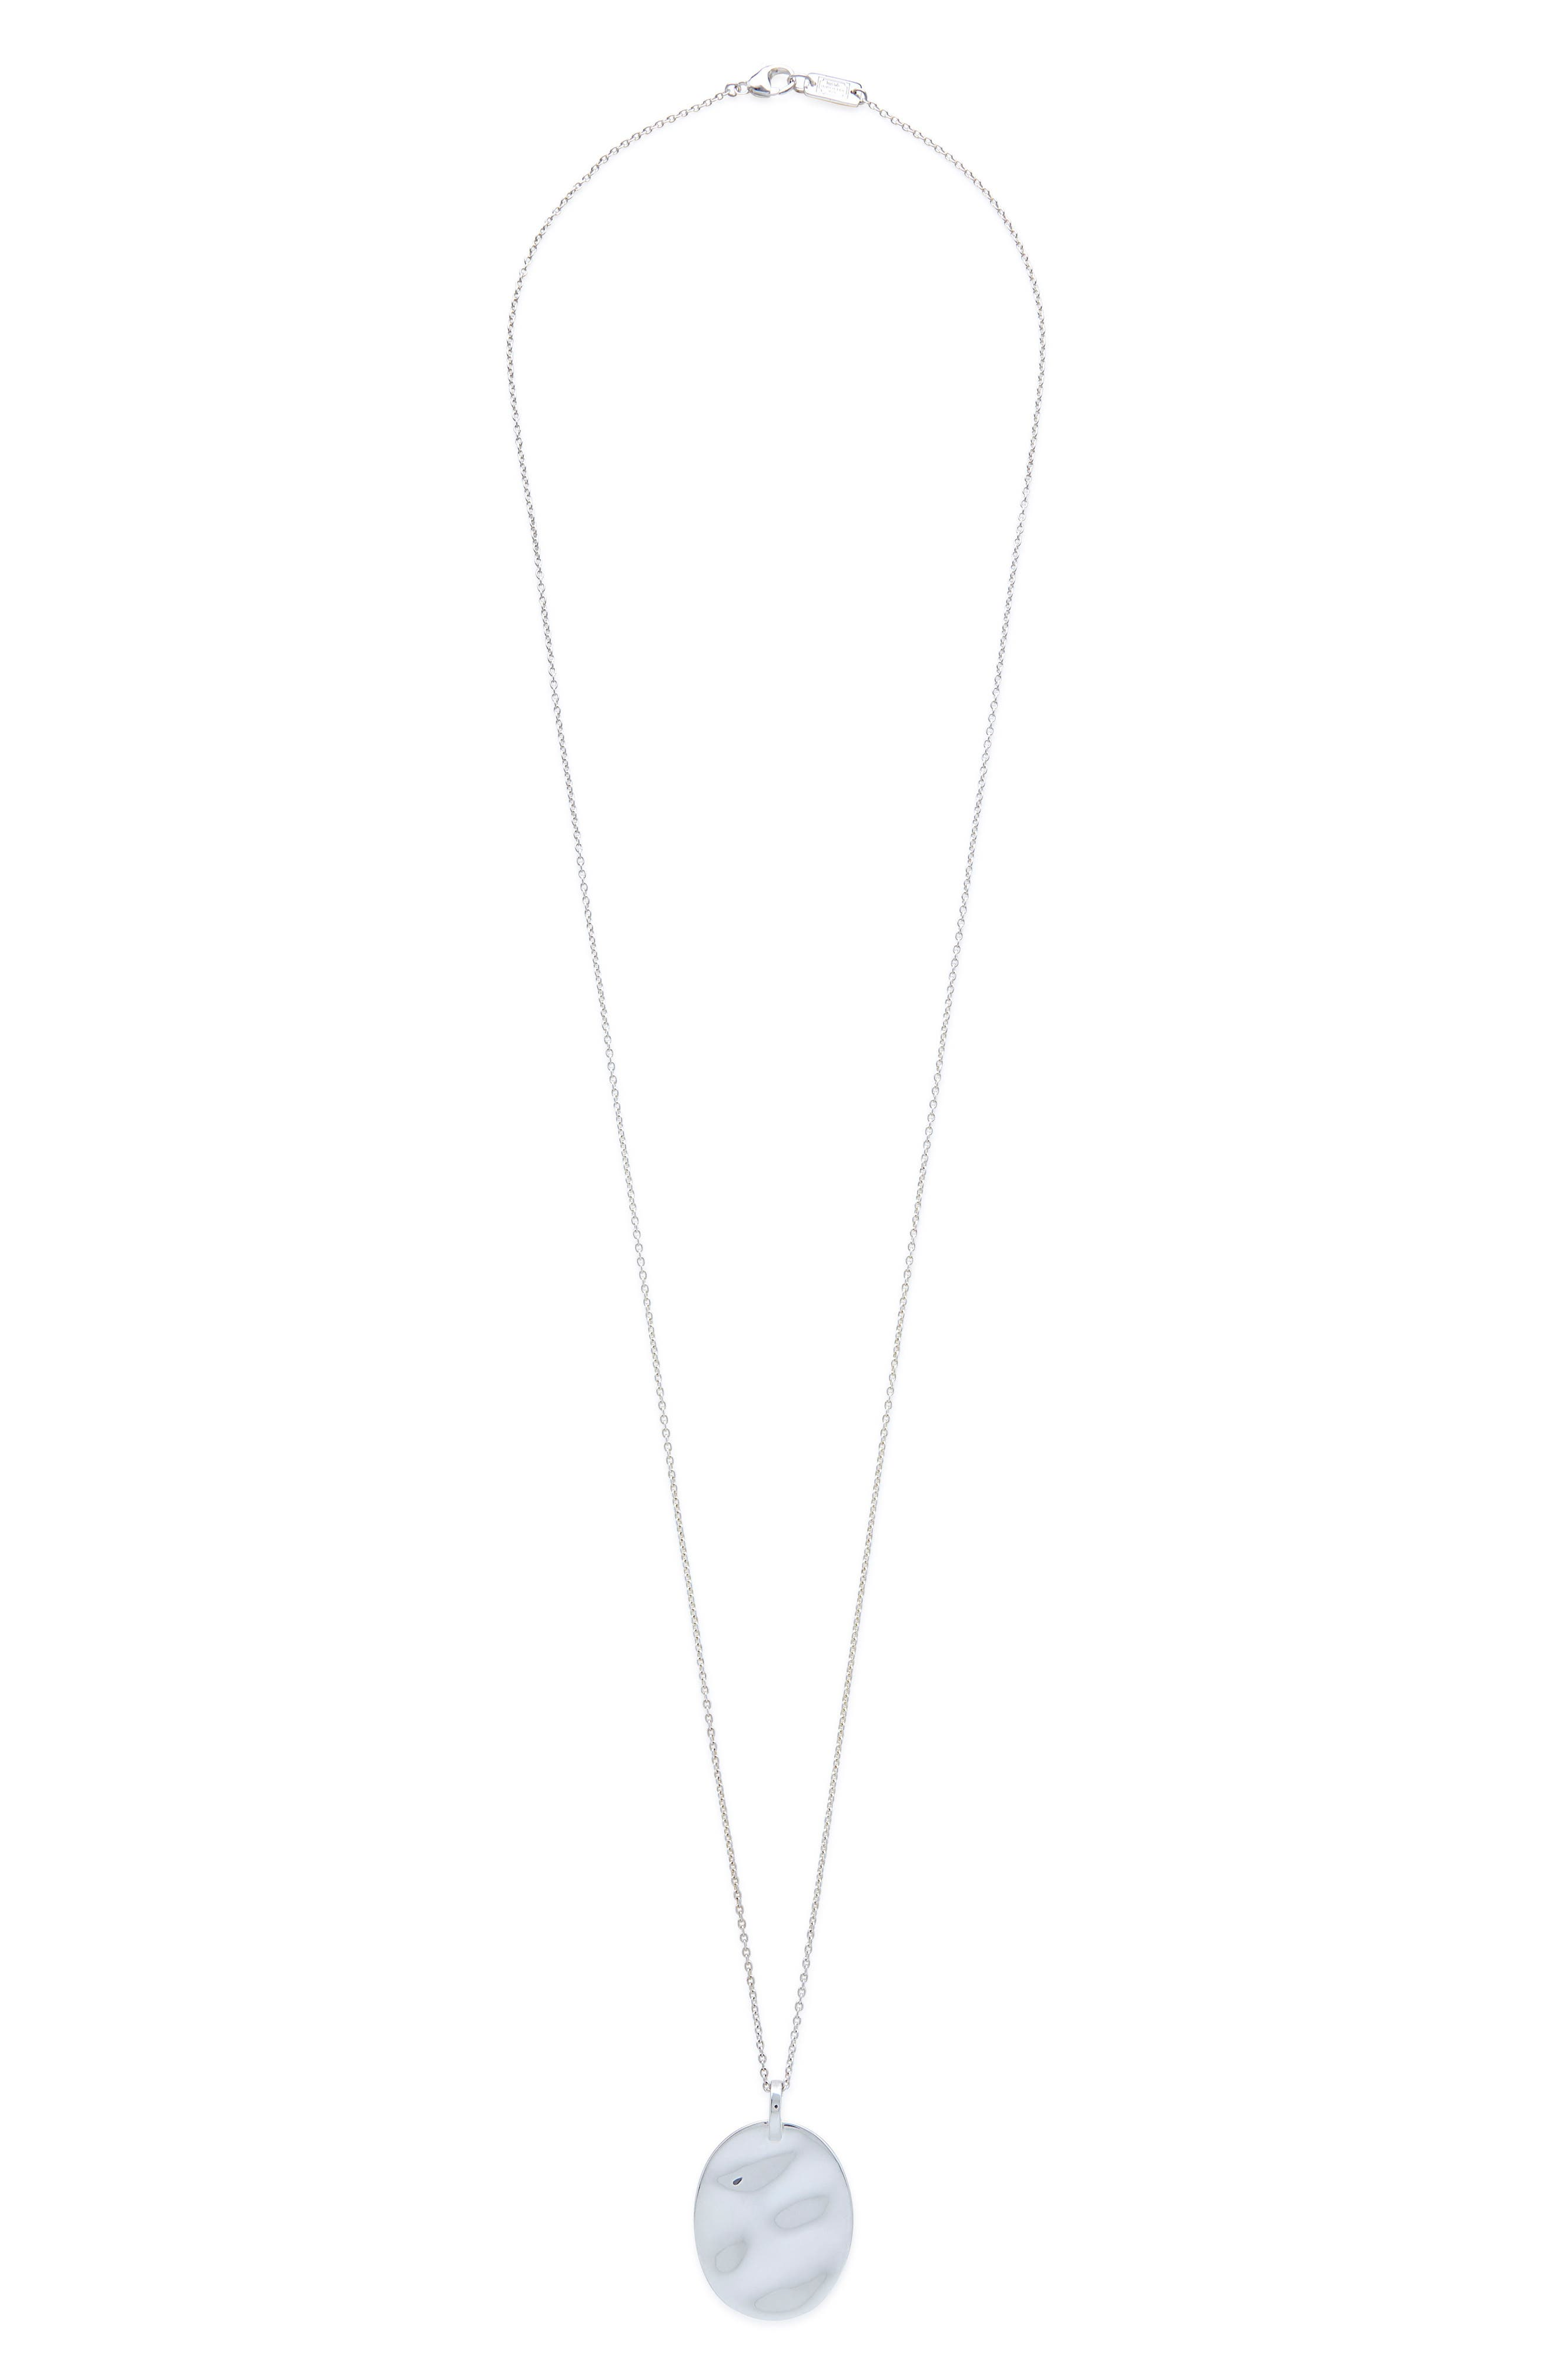 Senso Connected Pendant Necklace,                         Main,                         color, SILVER